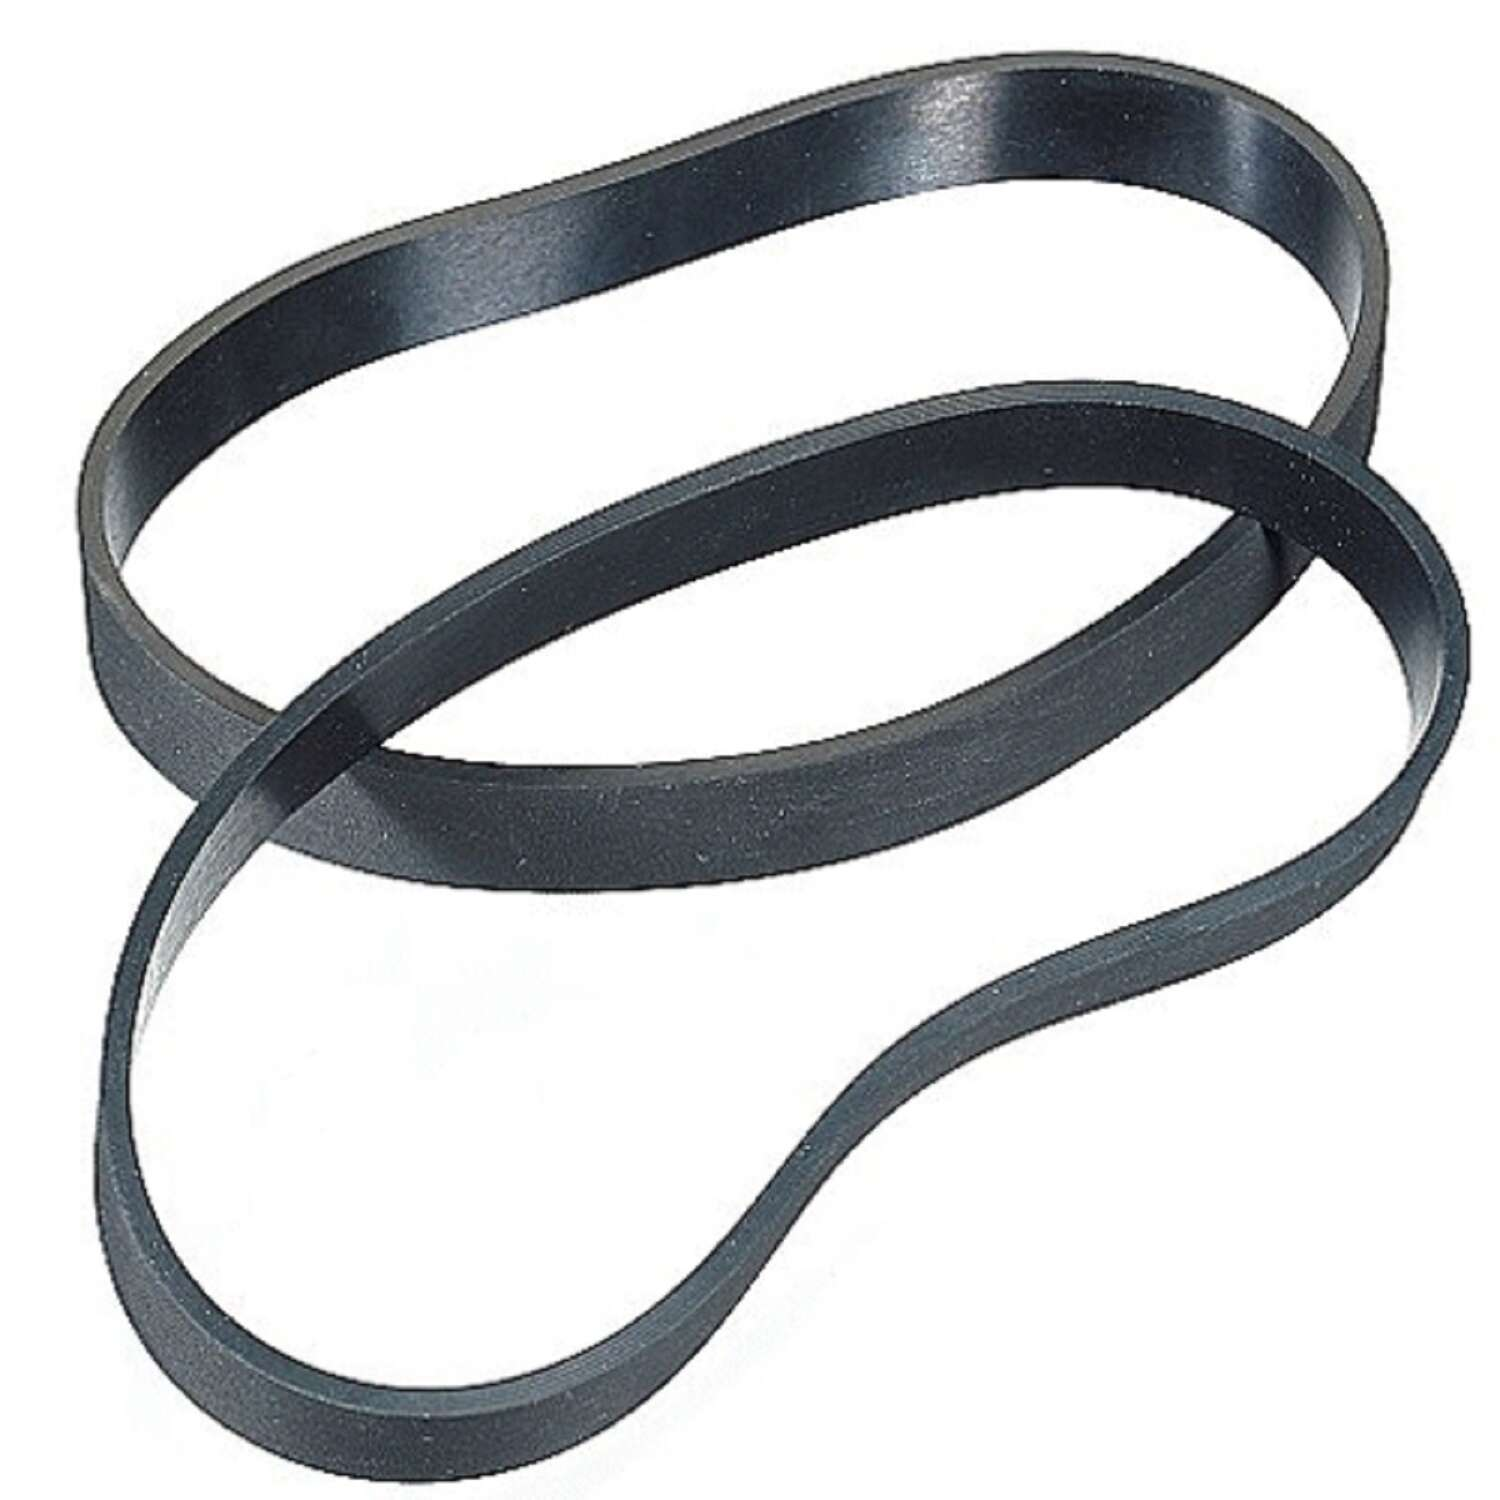 Bissell Cleanview Vacuum Belt Style 7 For Use With Bissell Bagged 2 / Pack Bissell